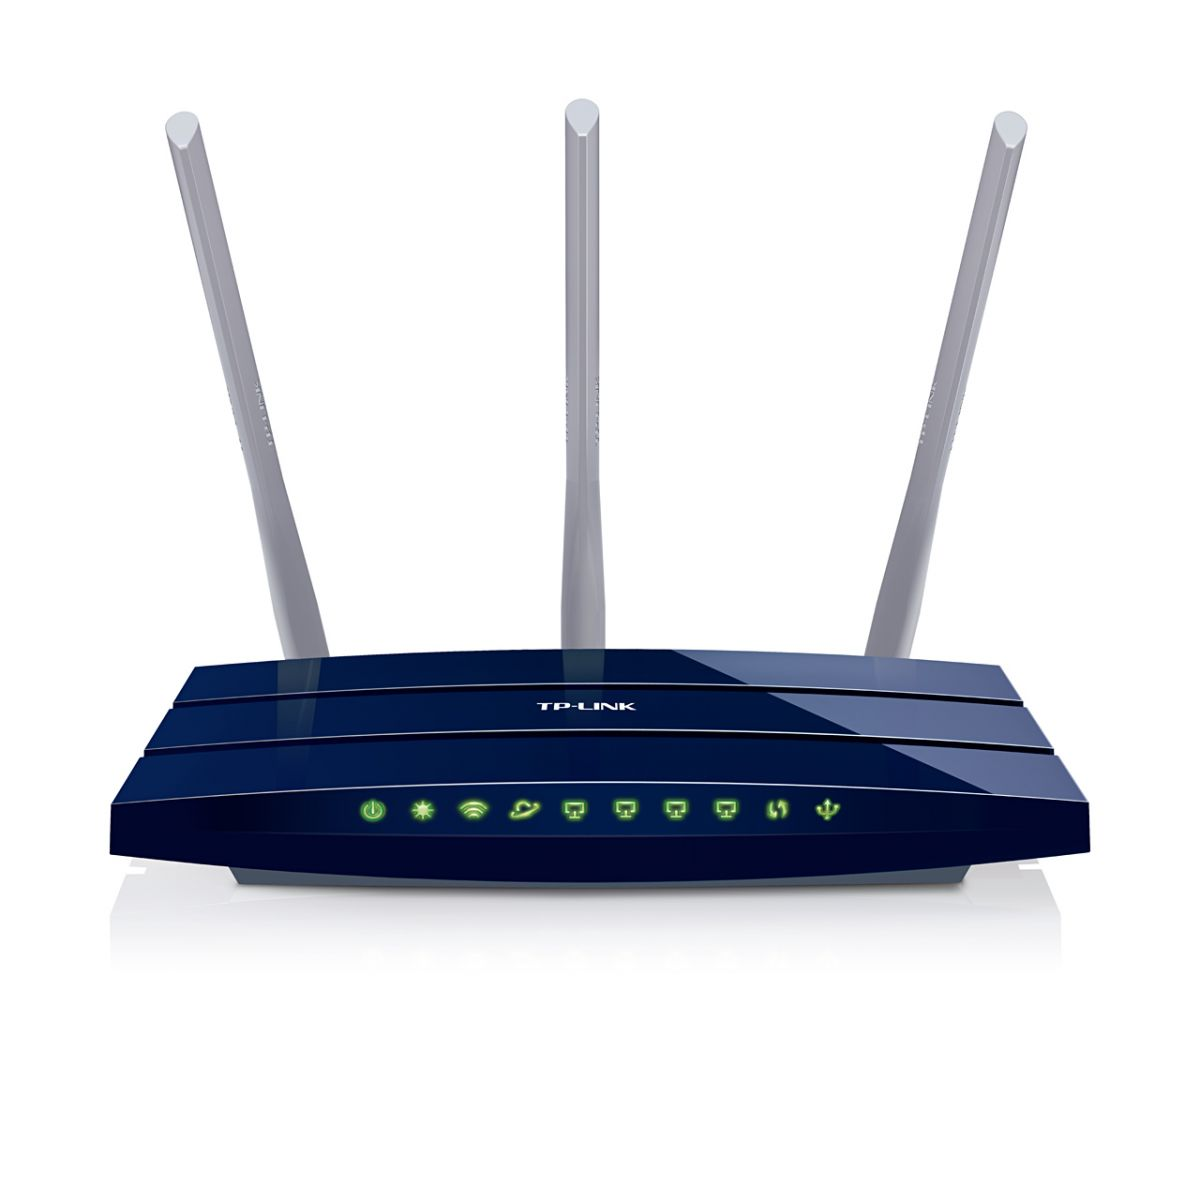 Roteador Wireless Gigalan TL-WR1043ND c/ 3 Antenas - Tplink